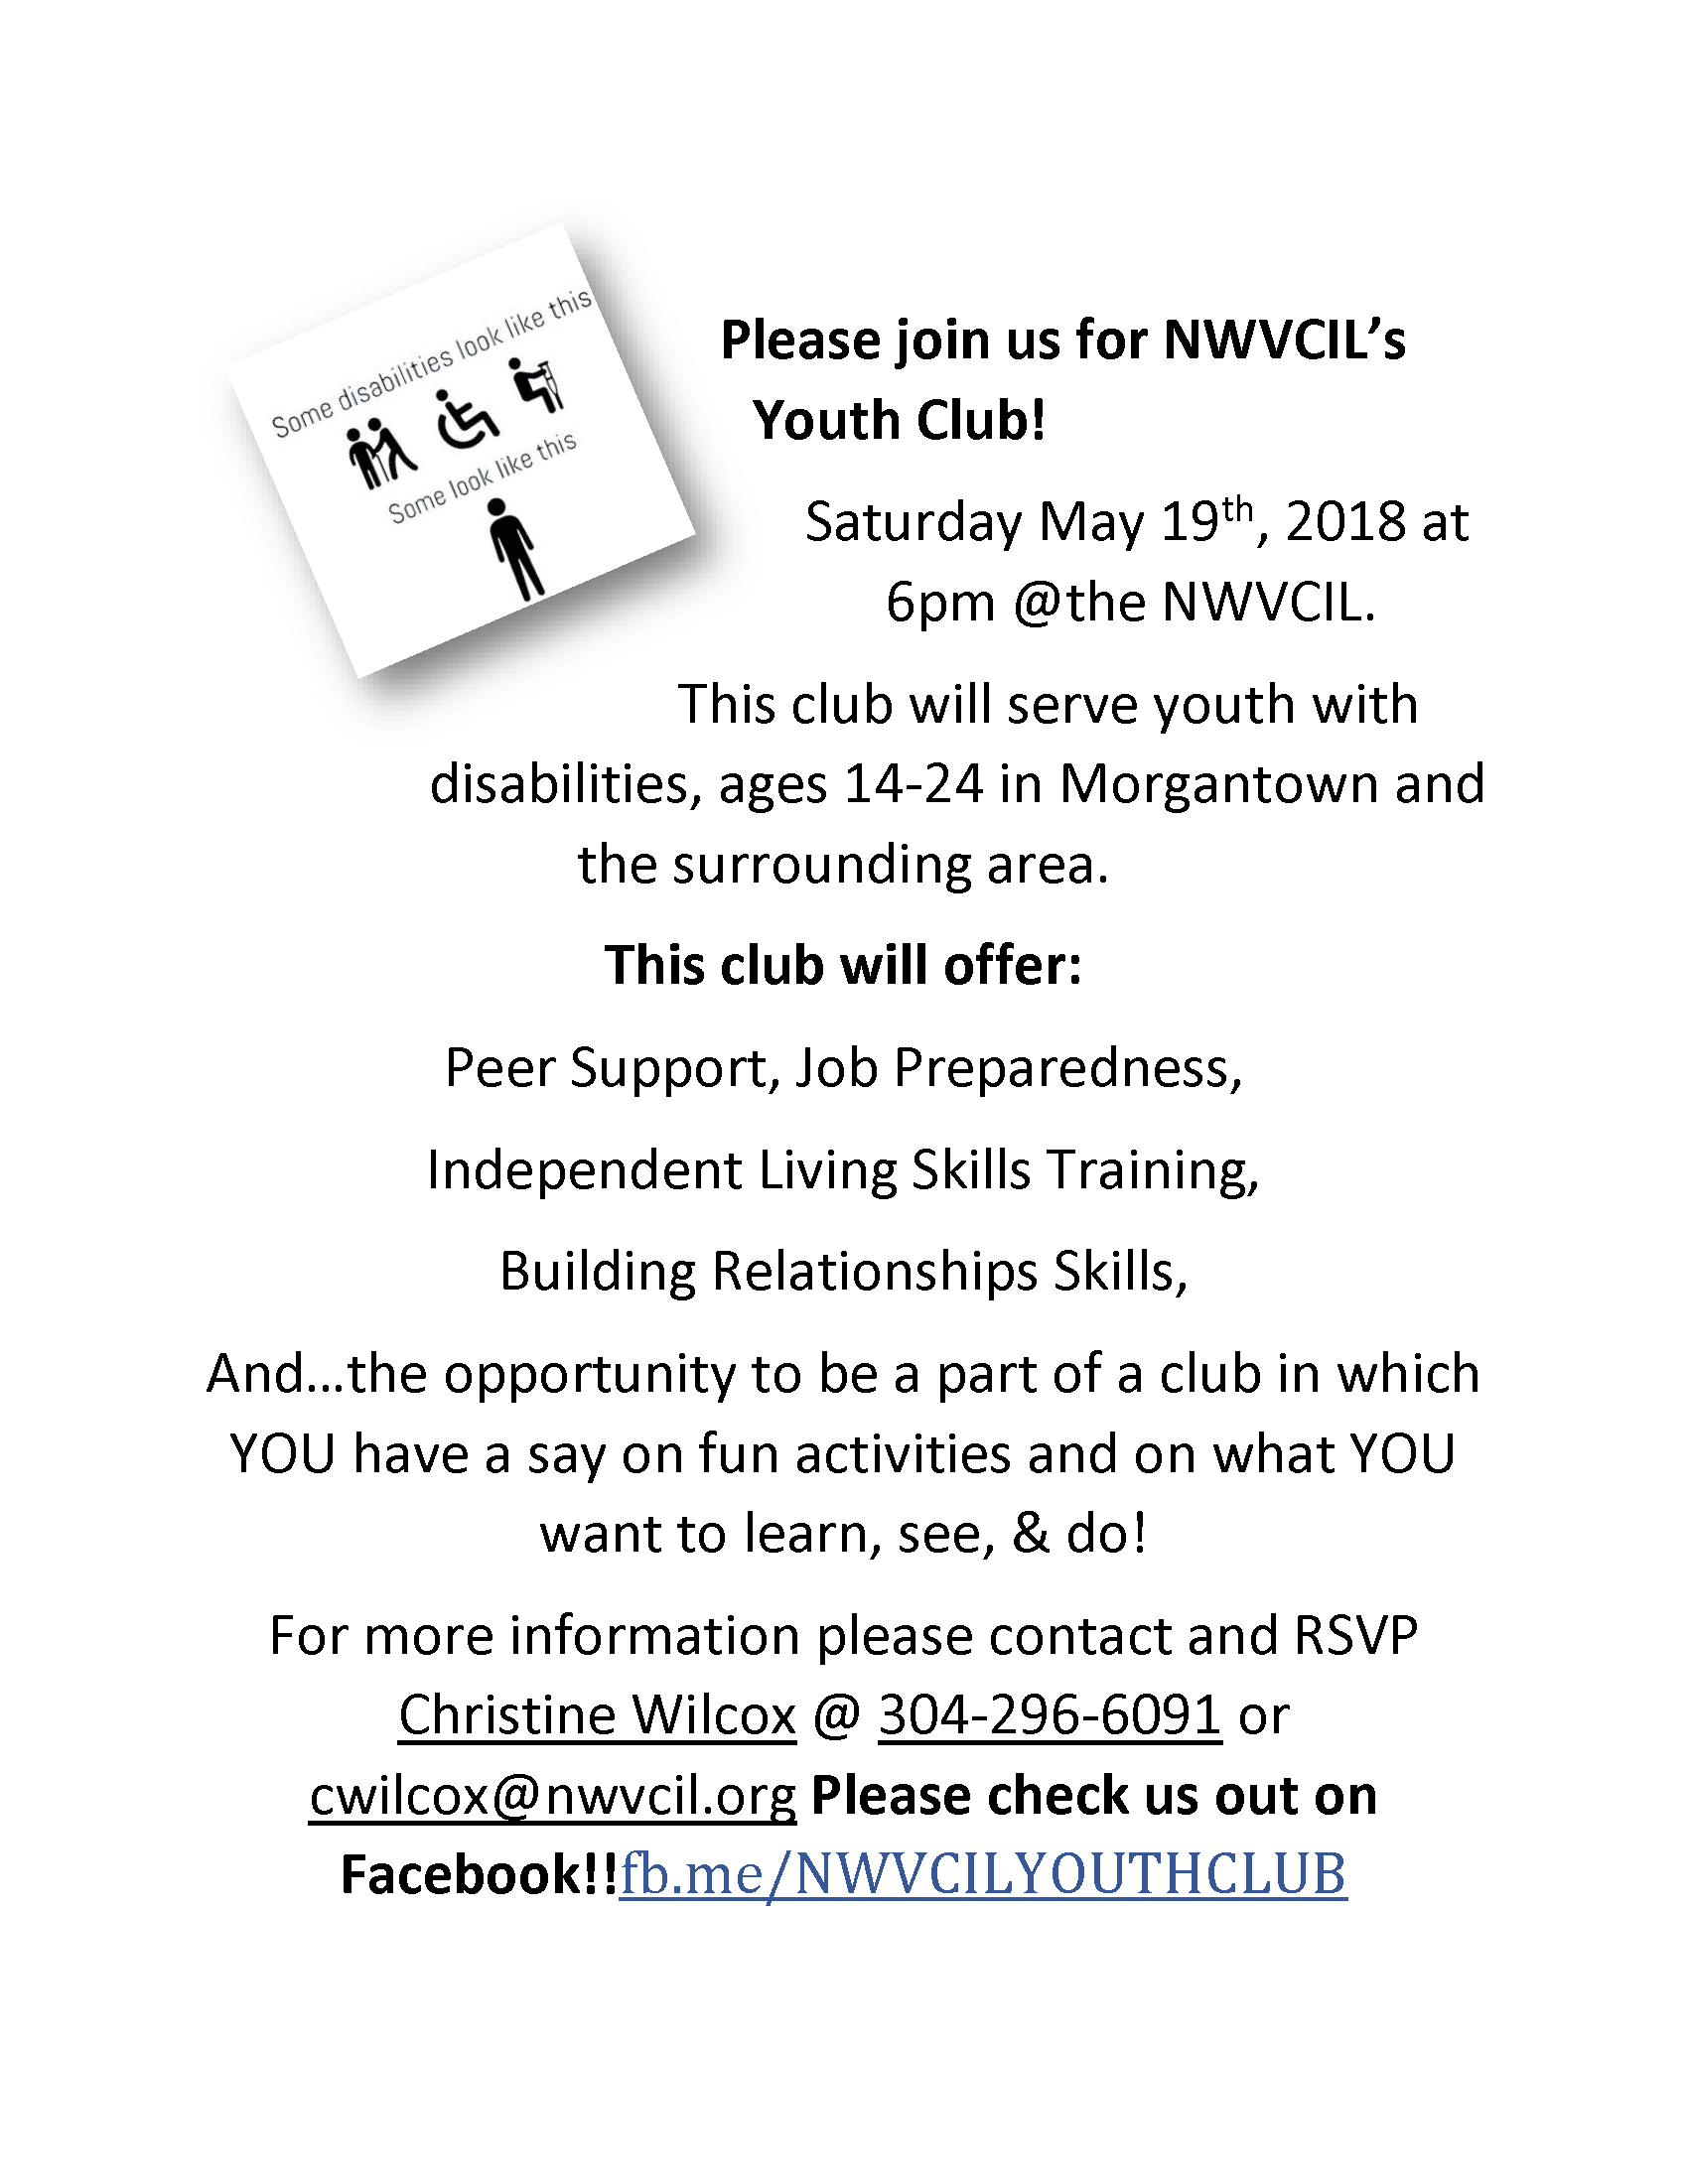 DATE CHANGE:  Please join us for NWVCIL's Youth Club!  Saturday May 19th, 2018 at 6pm @the NWVCIL.  This club will serve youth with disabilities, ages 14-24 in Morgantown and the surrounding area.  This club will offer: Peer Support, Job Preparedness, Independent Living Skills Training, Building Relationships Skills, and…the opportunity to be a part of a club in which YOU have a say on fun activities and on what YOU want to learn, see, and do!  For more information please contact and RSVP Christine Wilcox @ 304-296-6091 or cwilcox@nwvcil.org  Please check us out on Facebook!! fb.me/NWVCILYOUTHCLUB